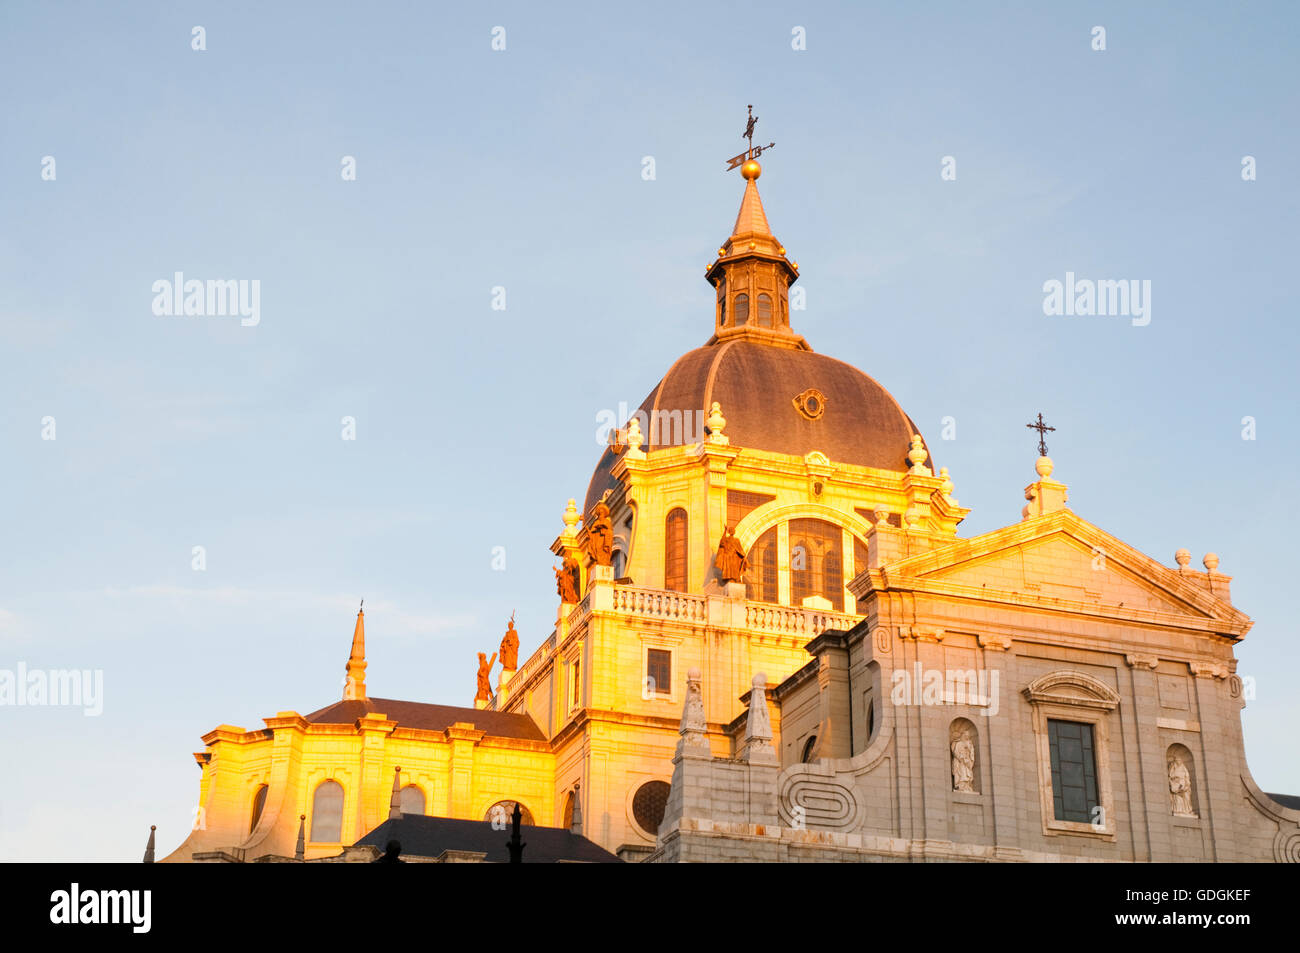 Cupola of The Almudena cathedral. Madrid, Spain. - Stock Image